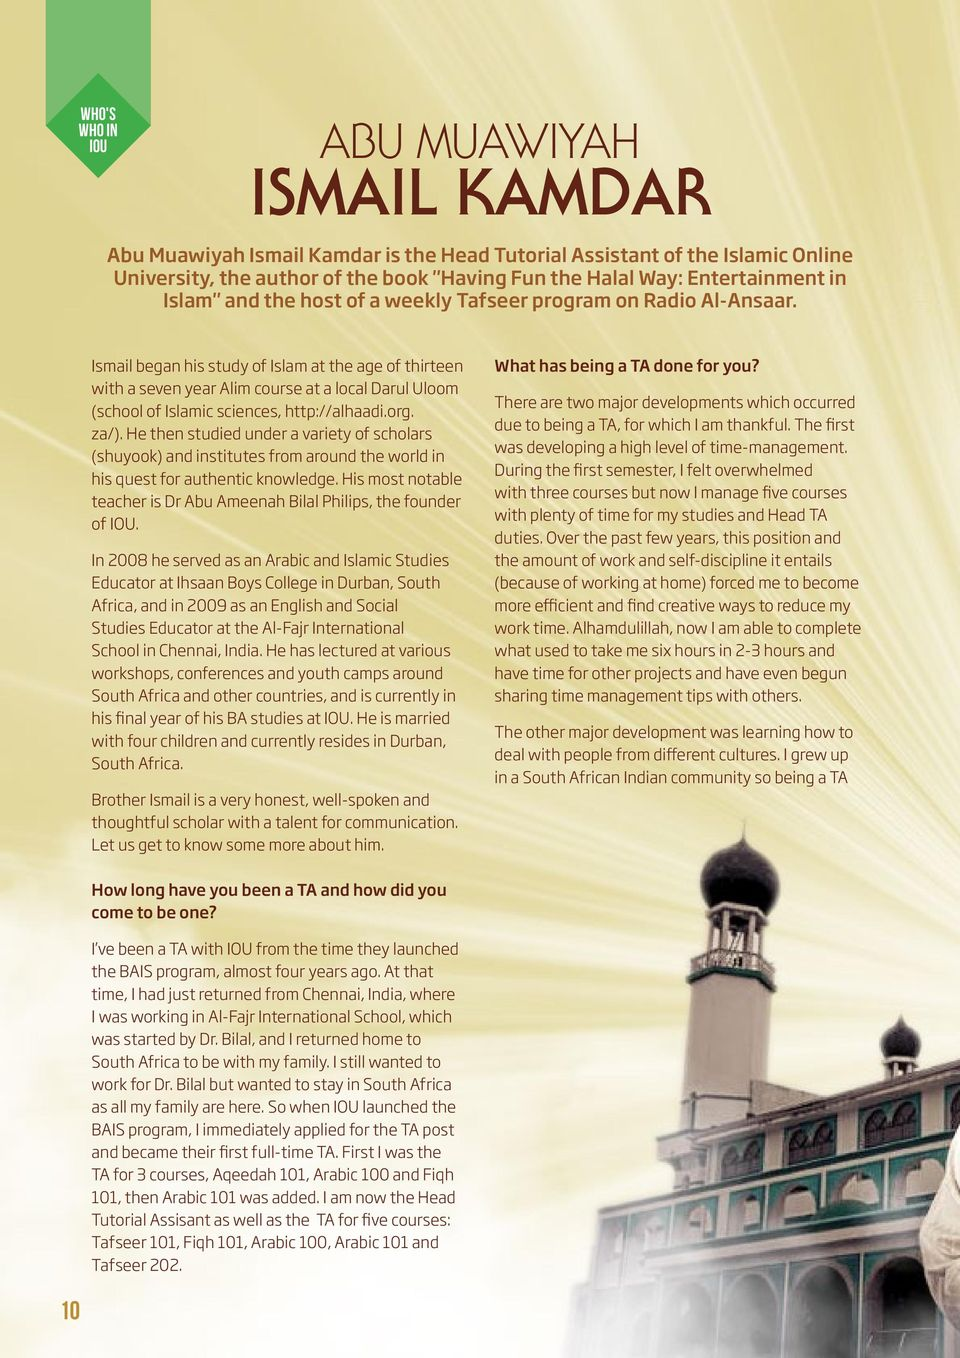 Ismail began his study of Islam at the age of thirteen with a seven year Alim course at a local Darul Uloom (school of Islamic sciences, http://alhaadi.org. za/).